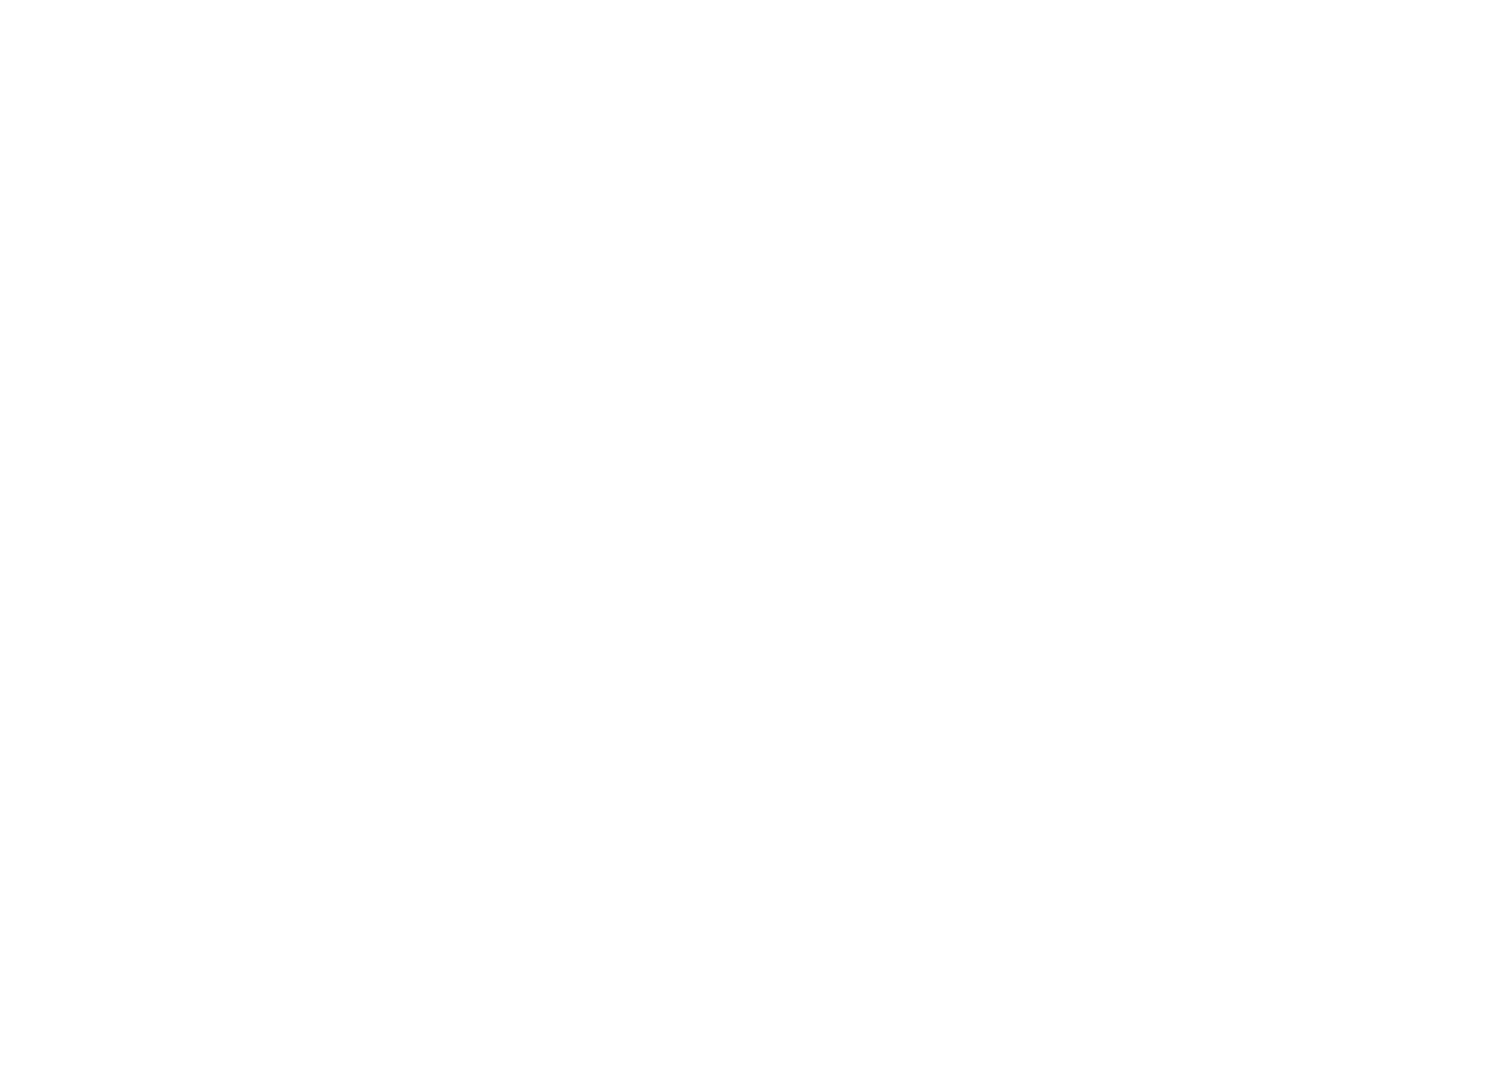 Chateau De Noir Holdings, Inc.